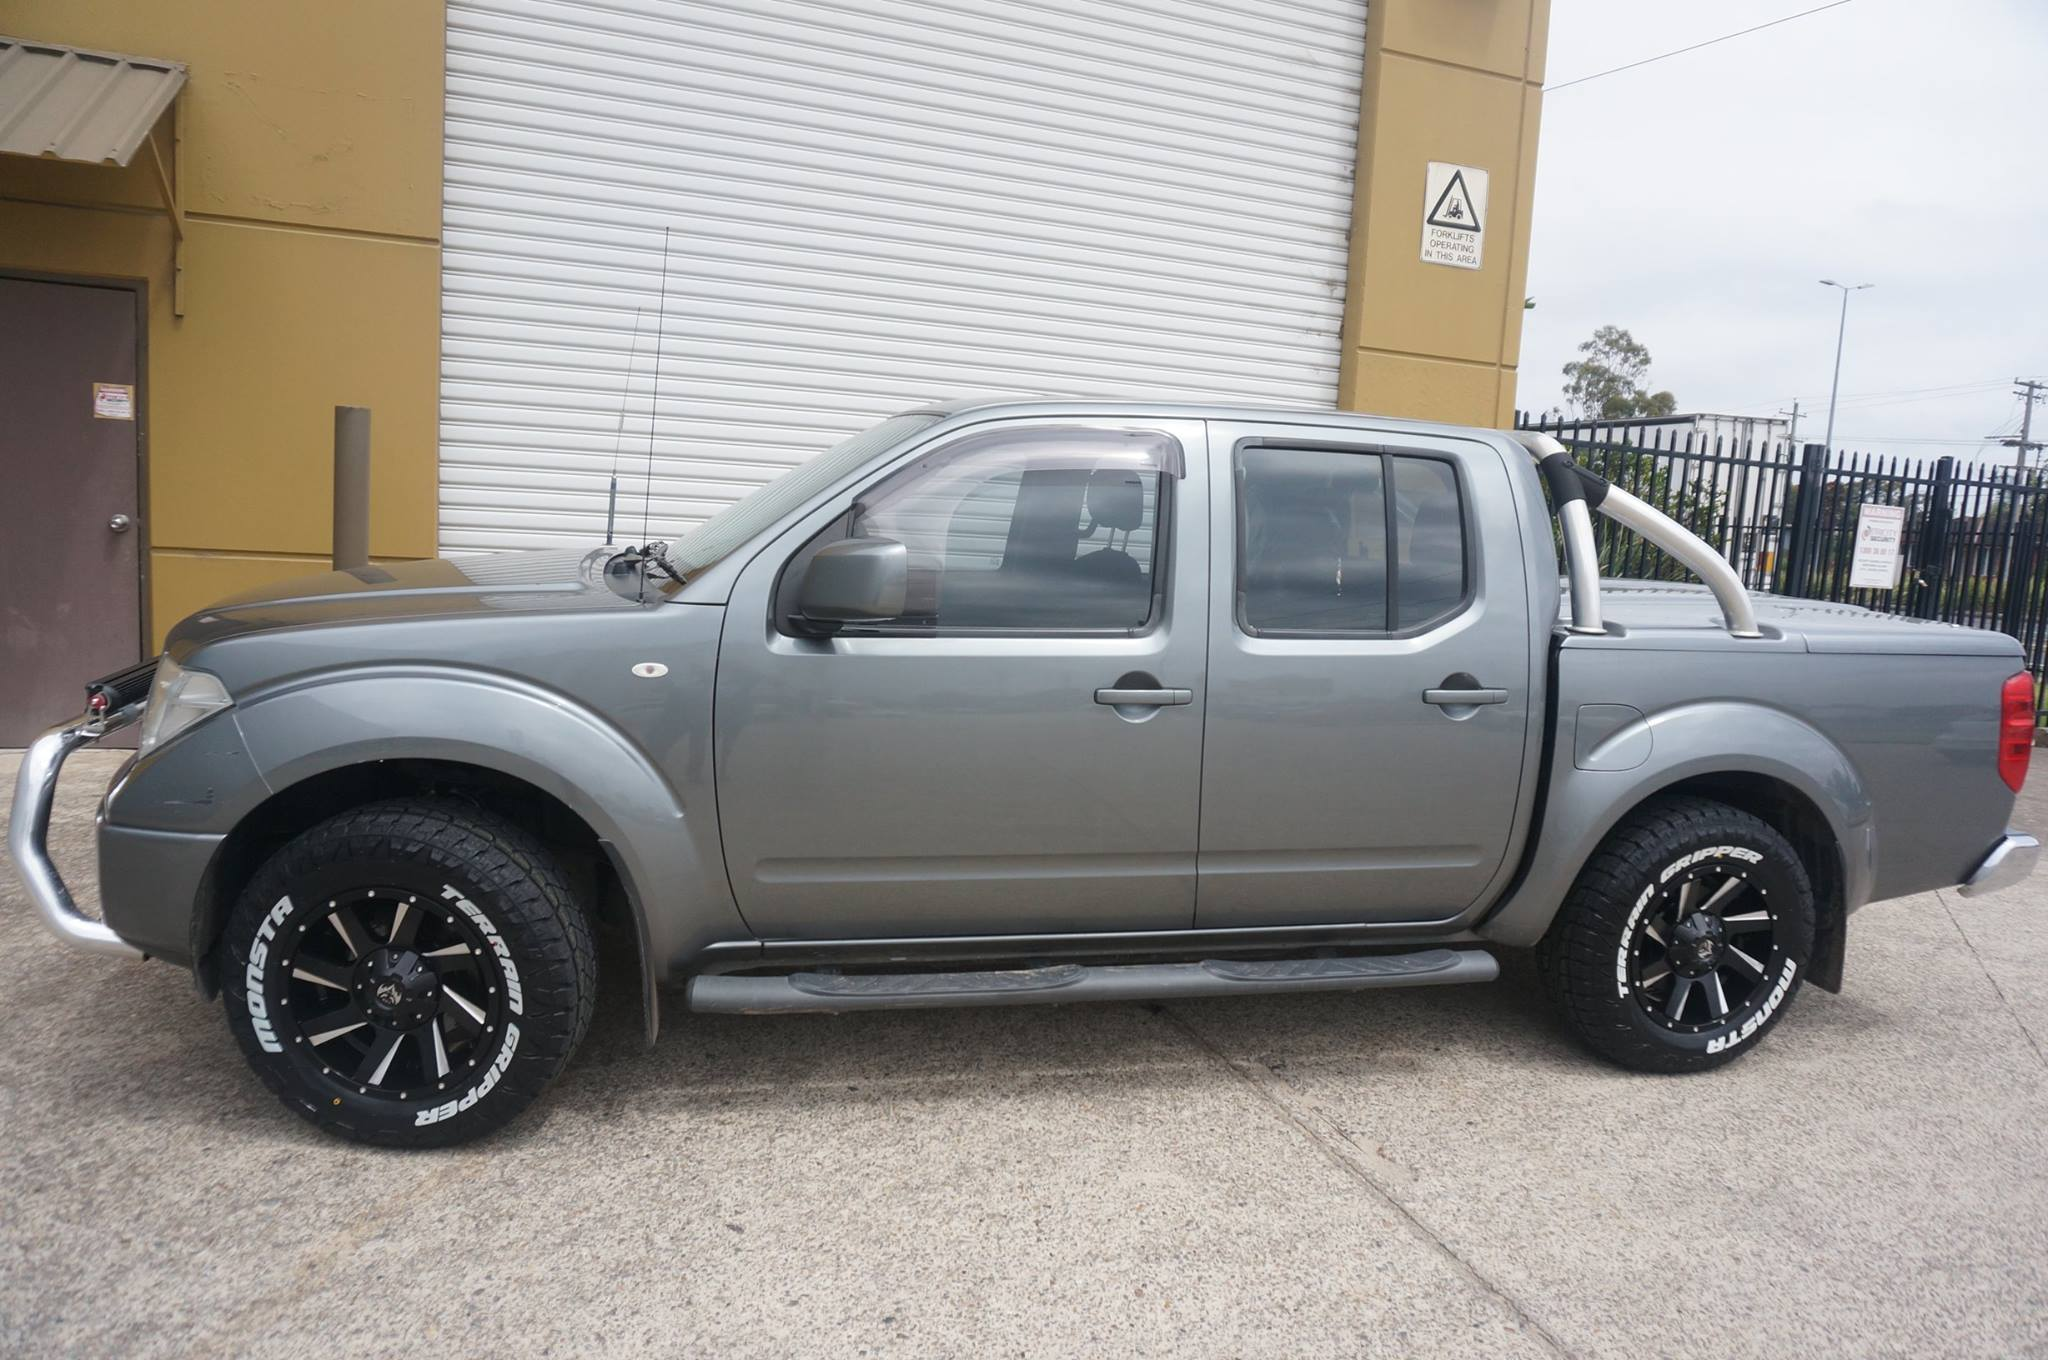 nissan navara wheels buy nissan navara rims tyres online. Black Bedroom Furniture Sets. Home Design Ideas